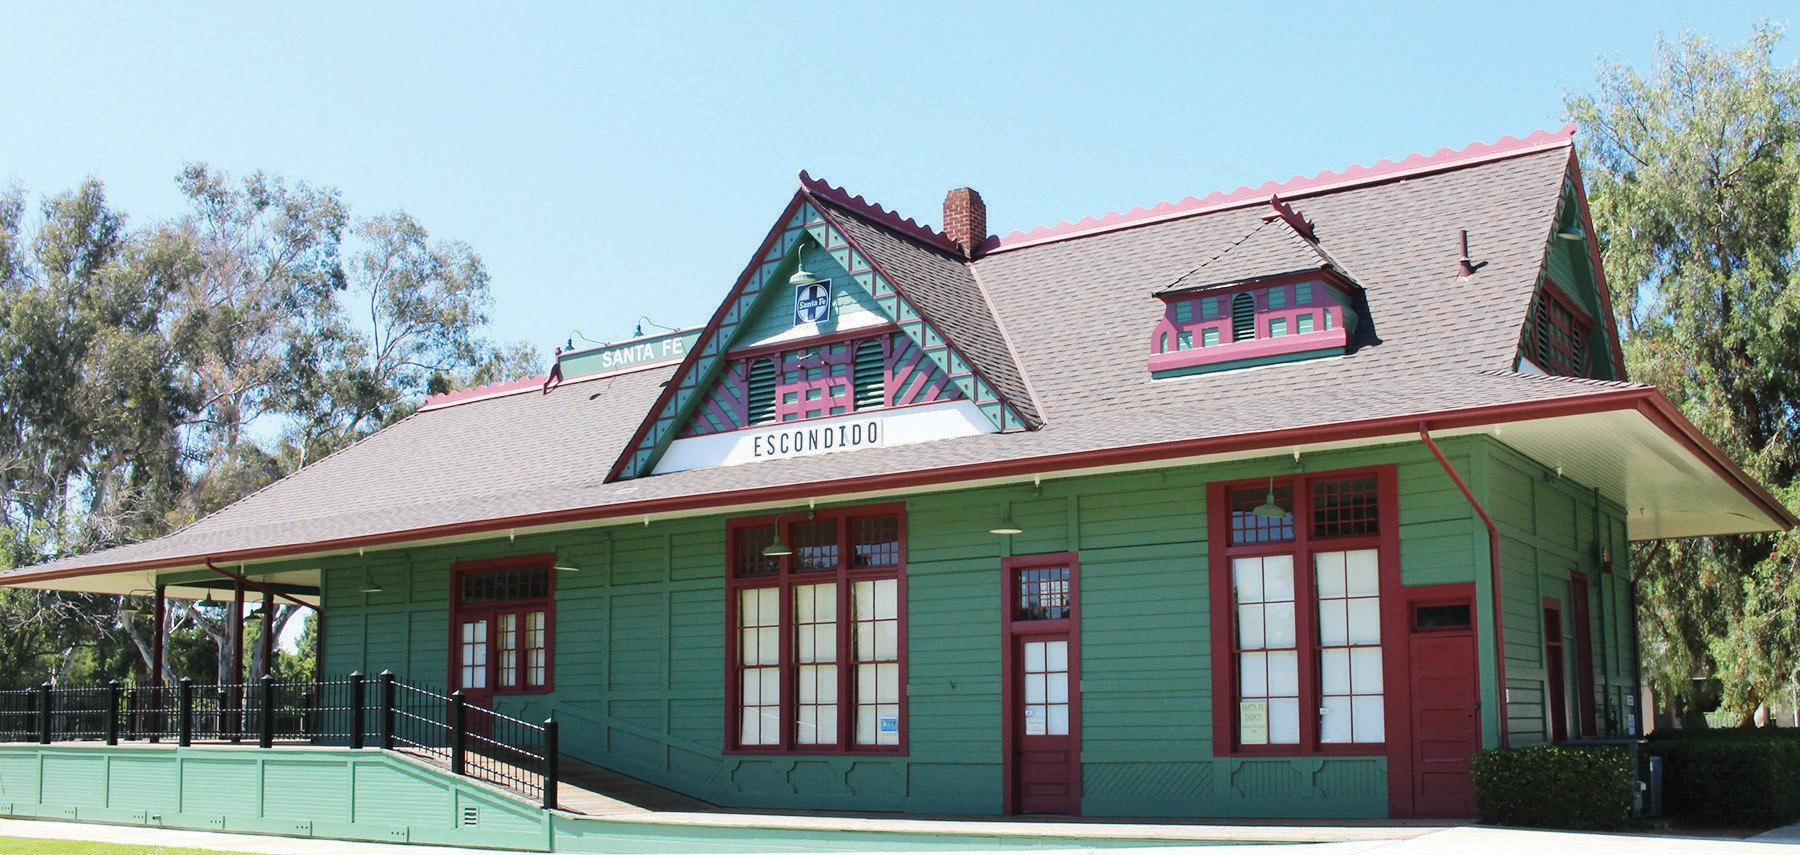 The Santa Fe Station was once the hub of transportation activity in Escondido.